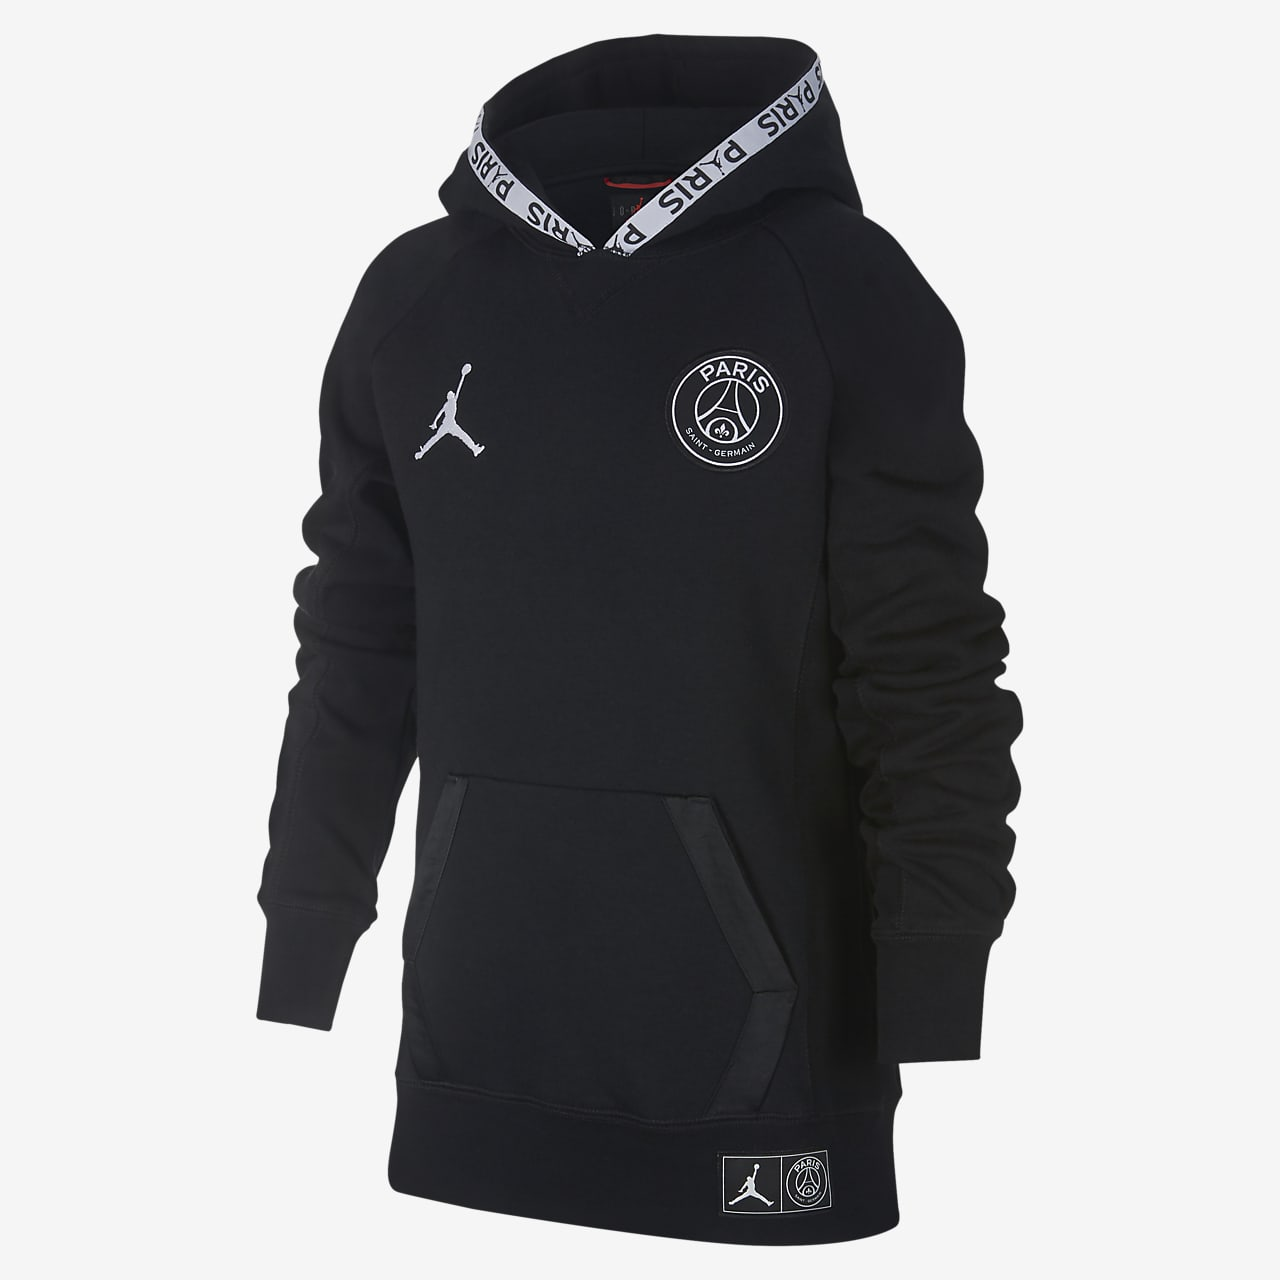 PSG Older Kids' (Boys') Fleece Pullover Hoodie